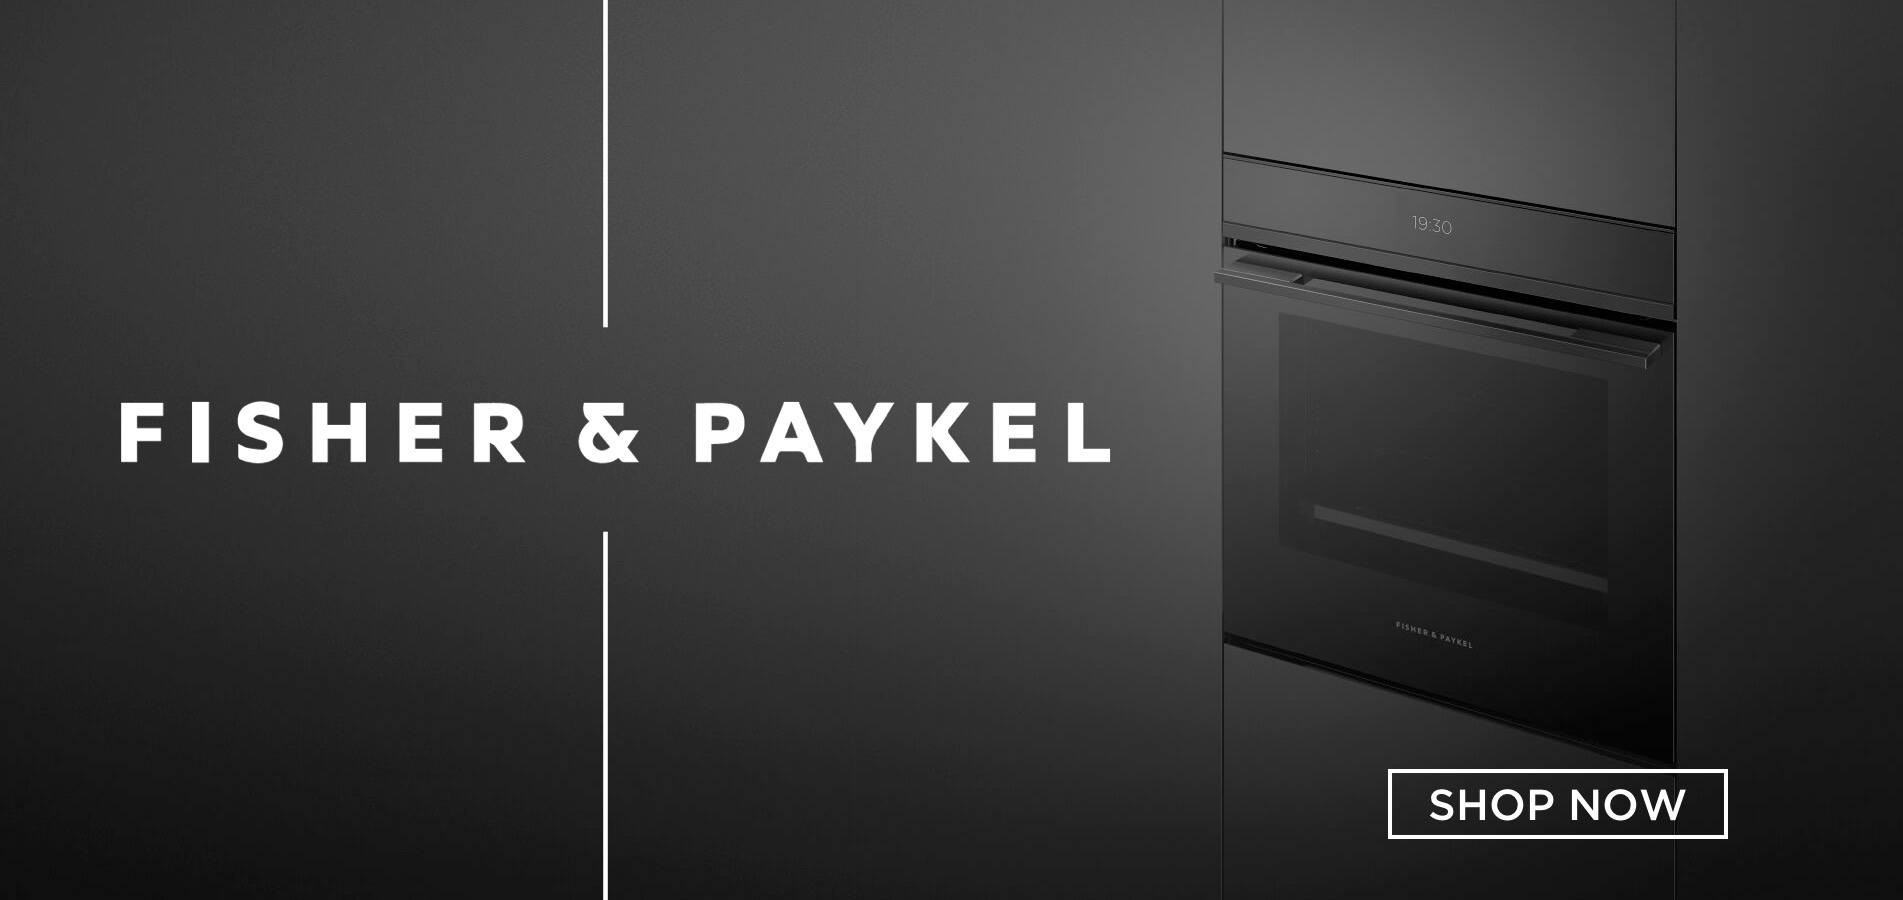 Fisher & Paykel - Evergreen Landing Page